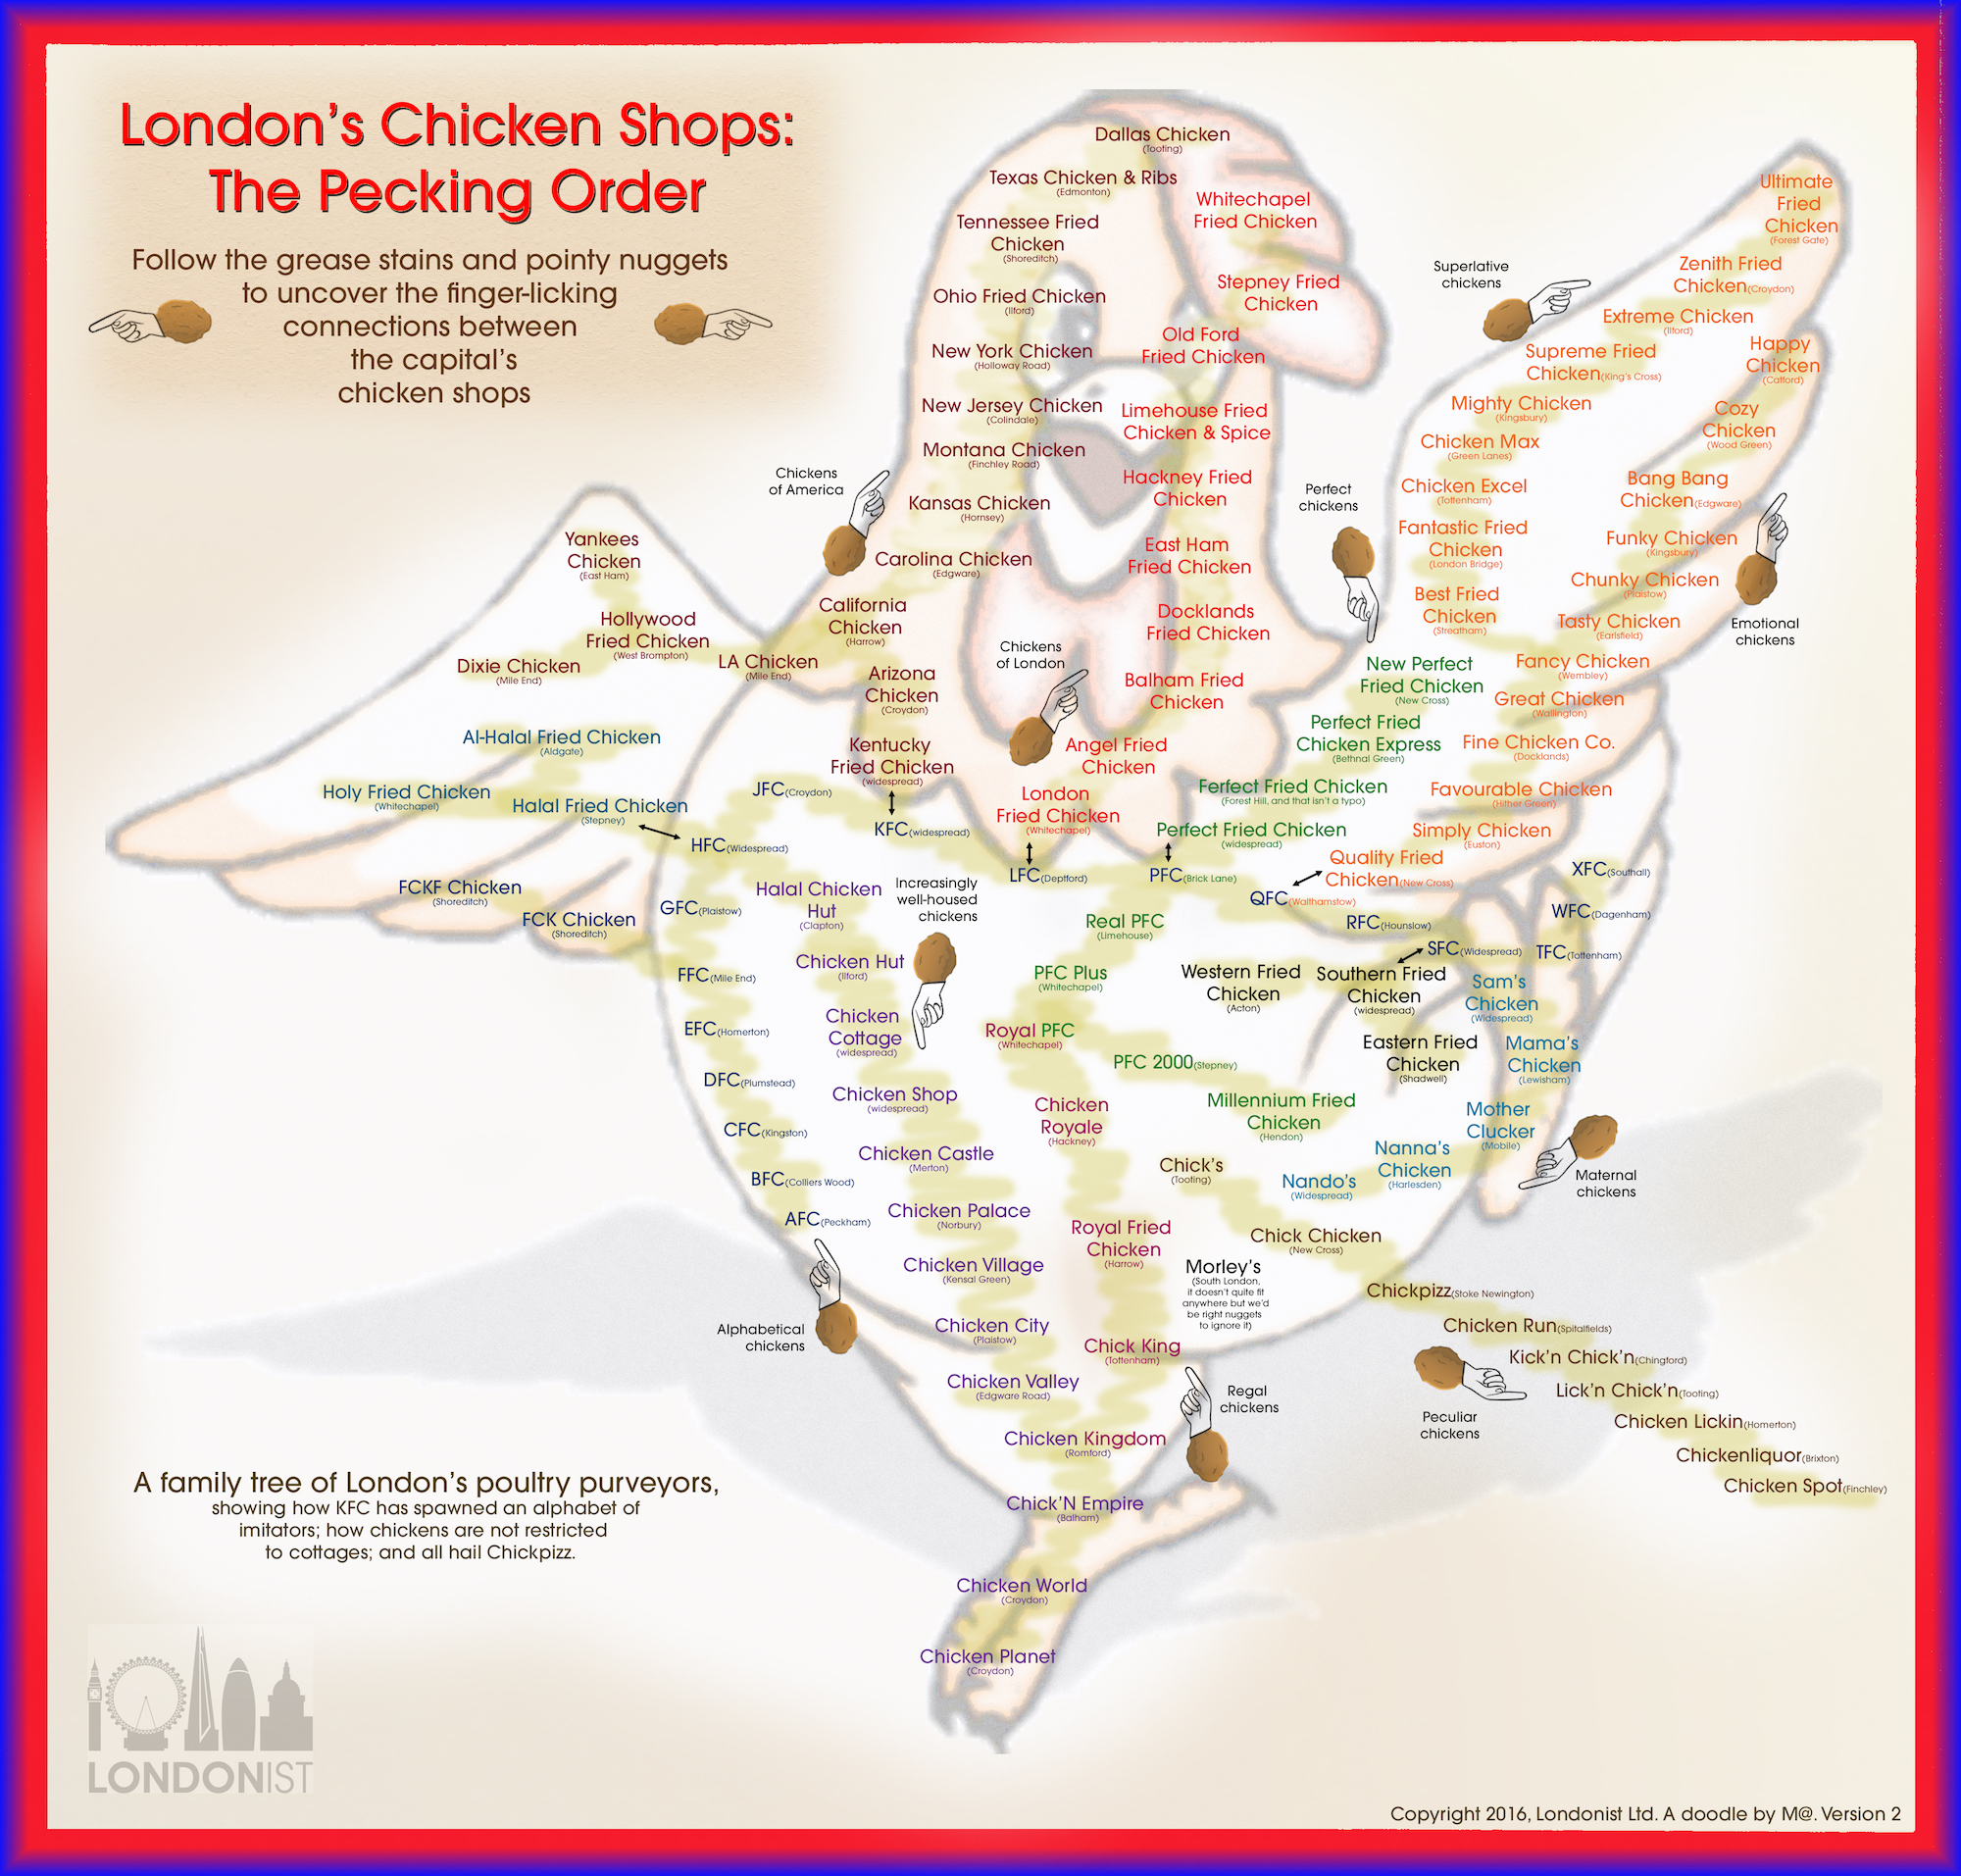 London Chicken Shop Names